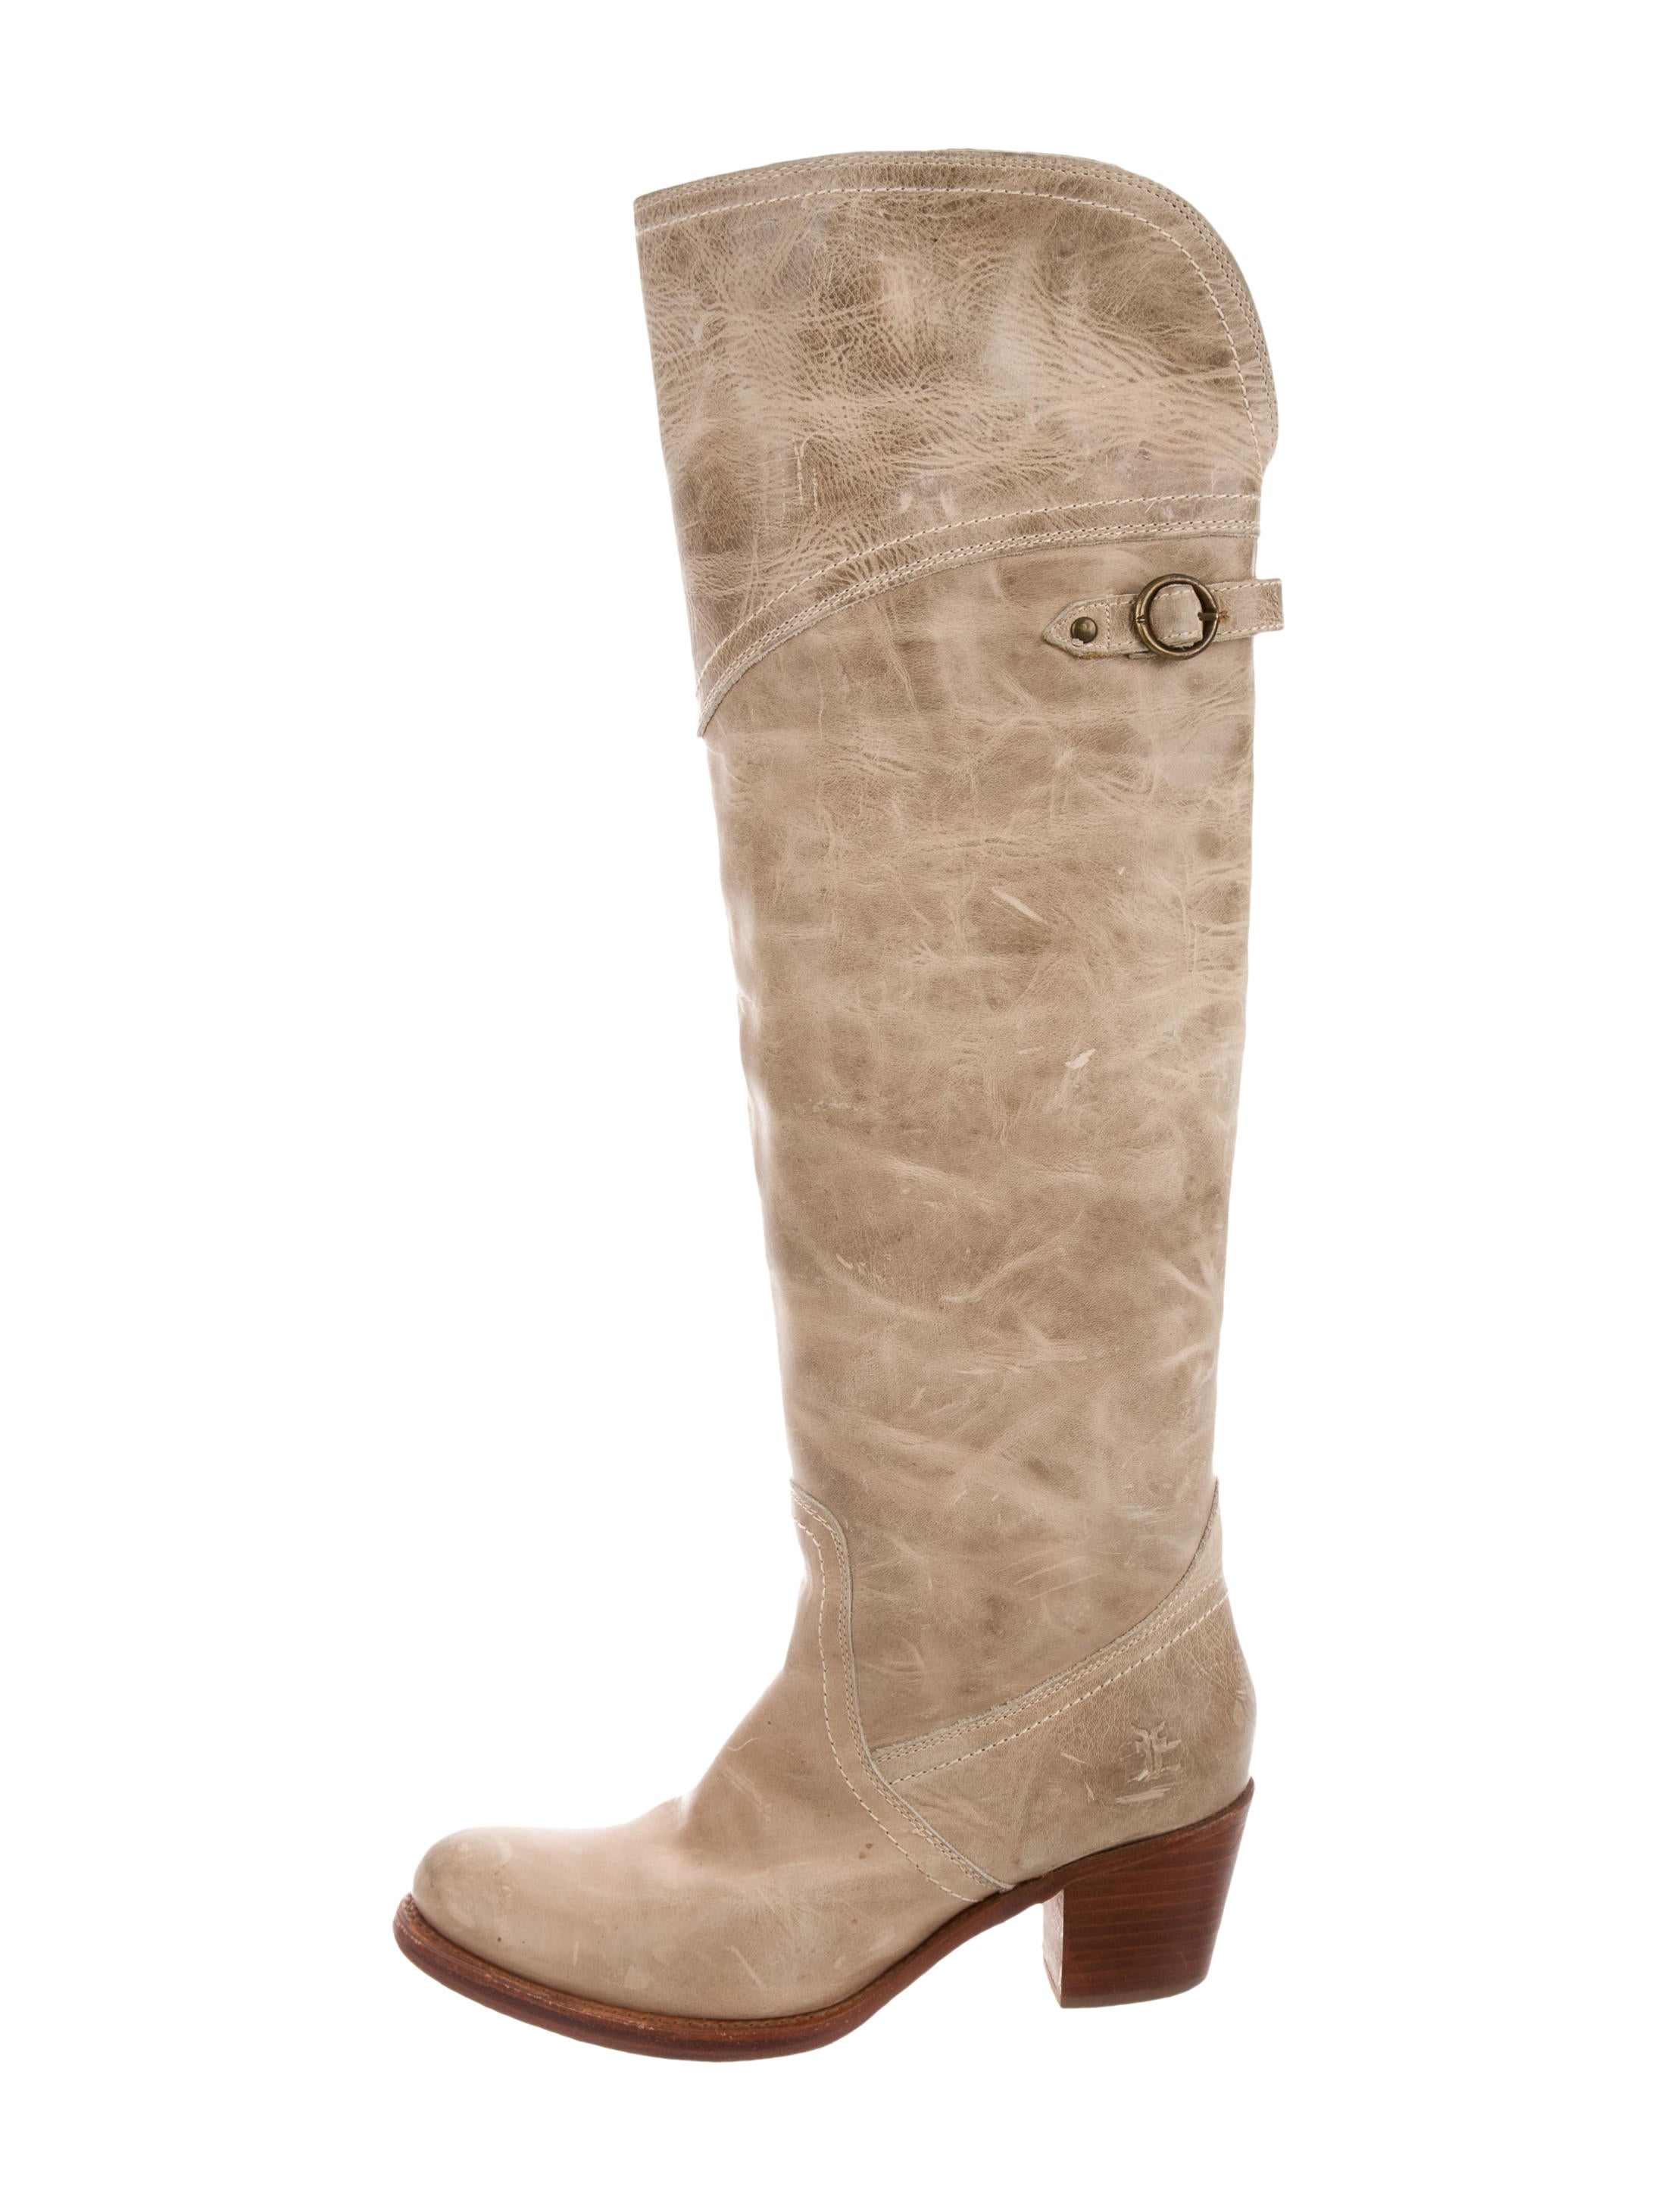 frye leather knee high boots shoes wf820734 the realreal